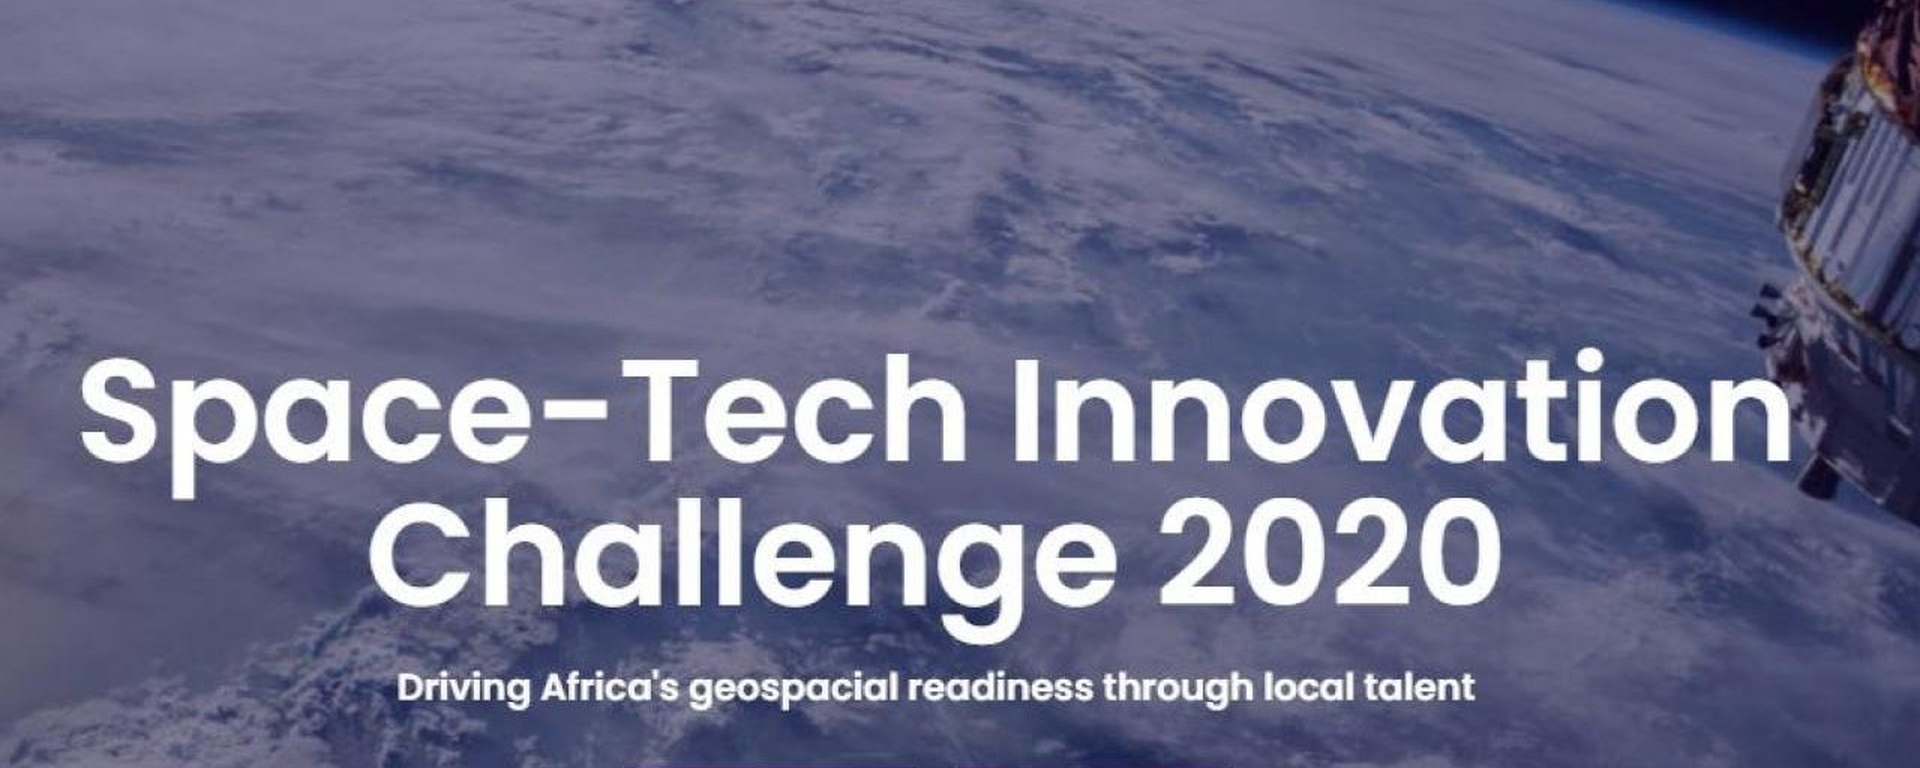 Space in Africa - Space-Tech Challenge 2020 Movemeback African initiative cover image